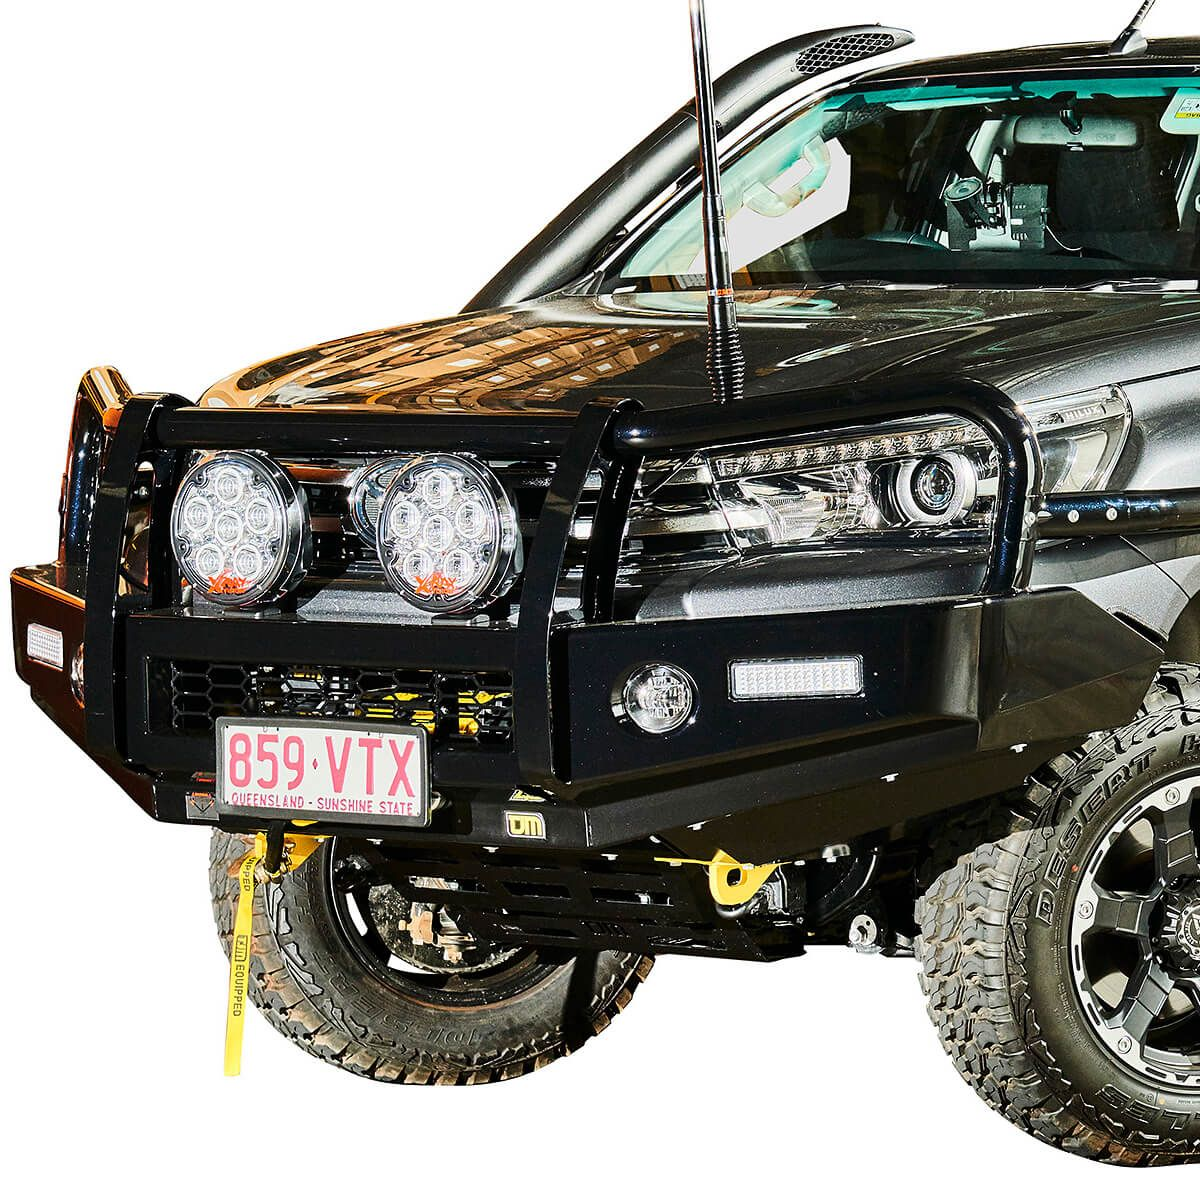 Toyota Hilux 2015 2018 Replacement Bumper (Courier Not Included, Please Request Separate Quote)